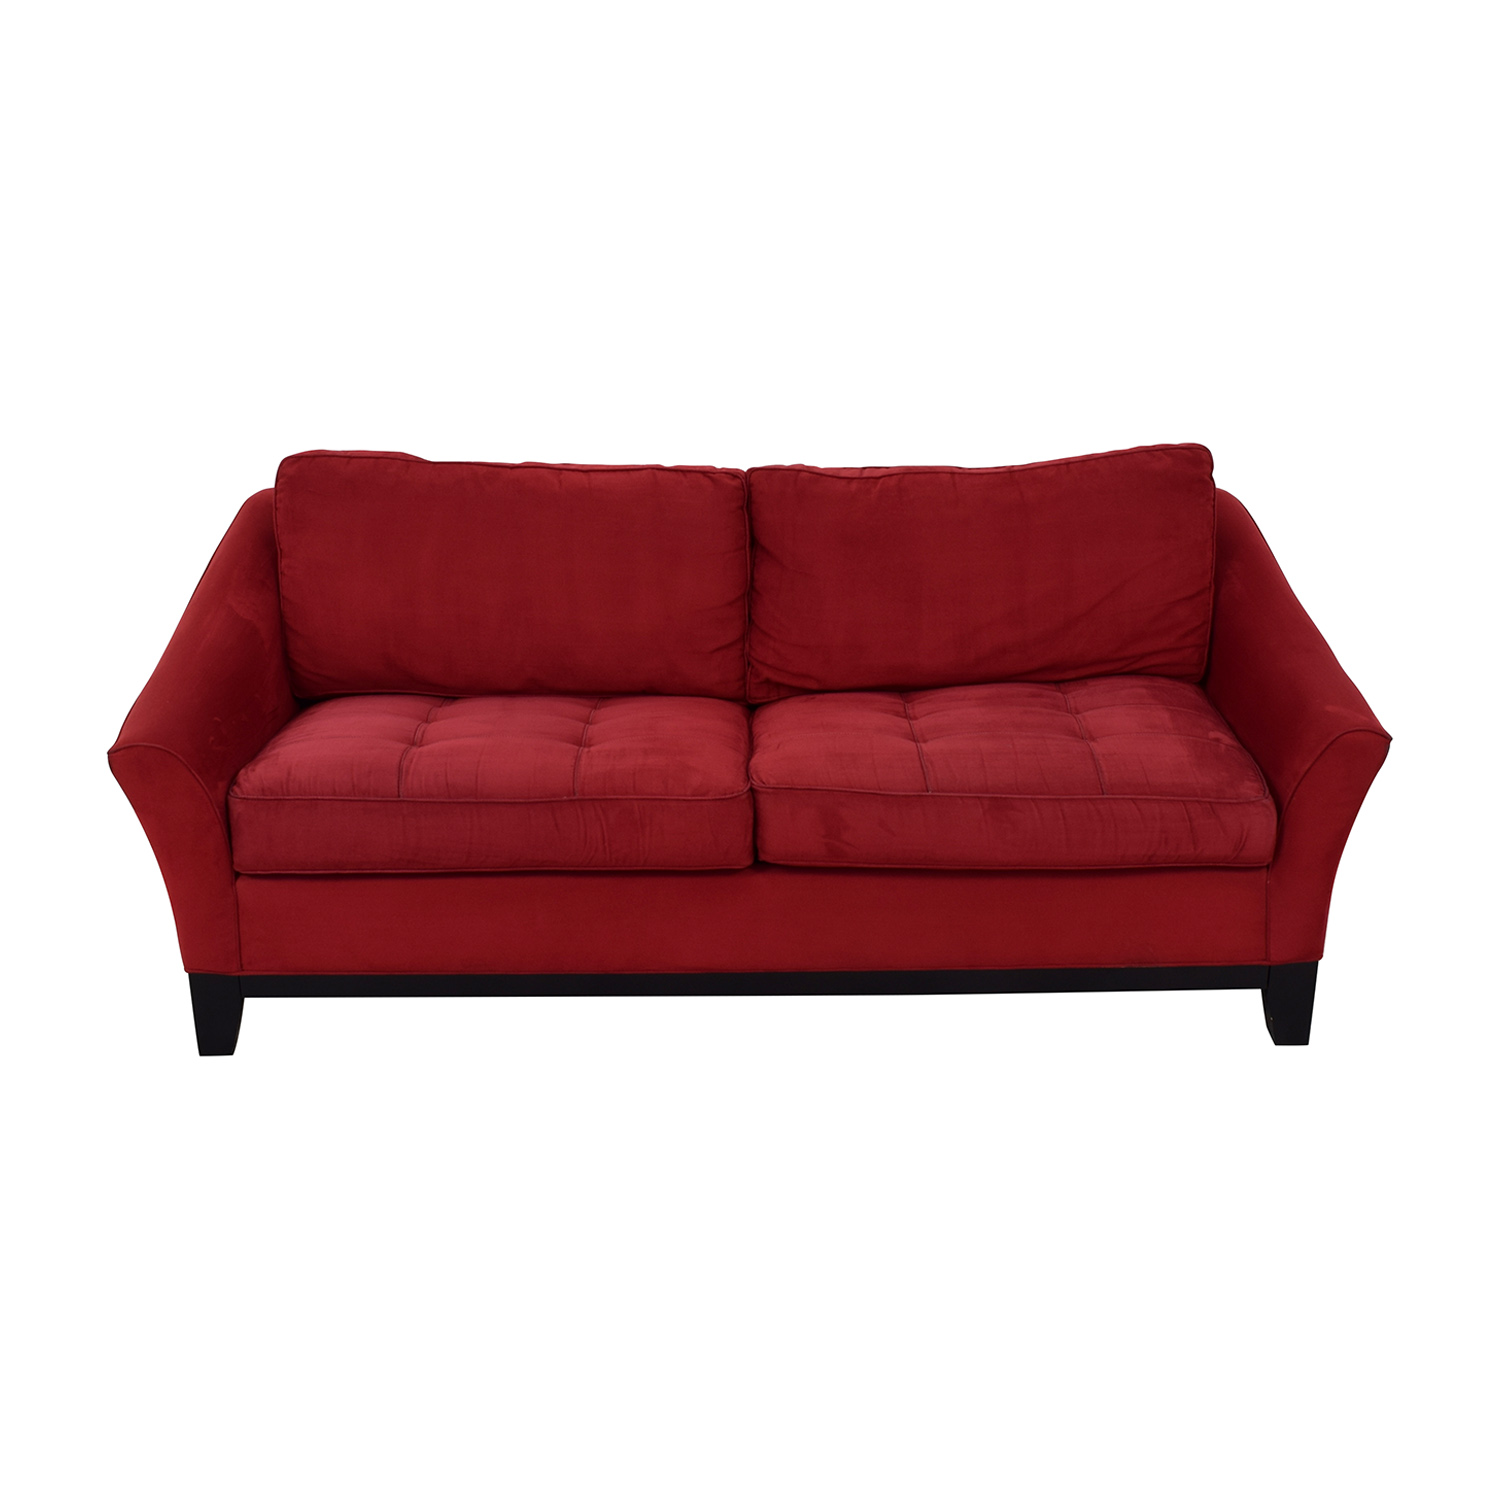 Raymour & Flanigan Raymour & Flanigan Red Sleeper Sofa coupon